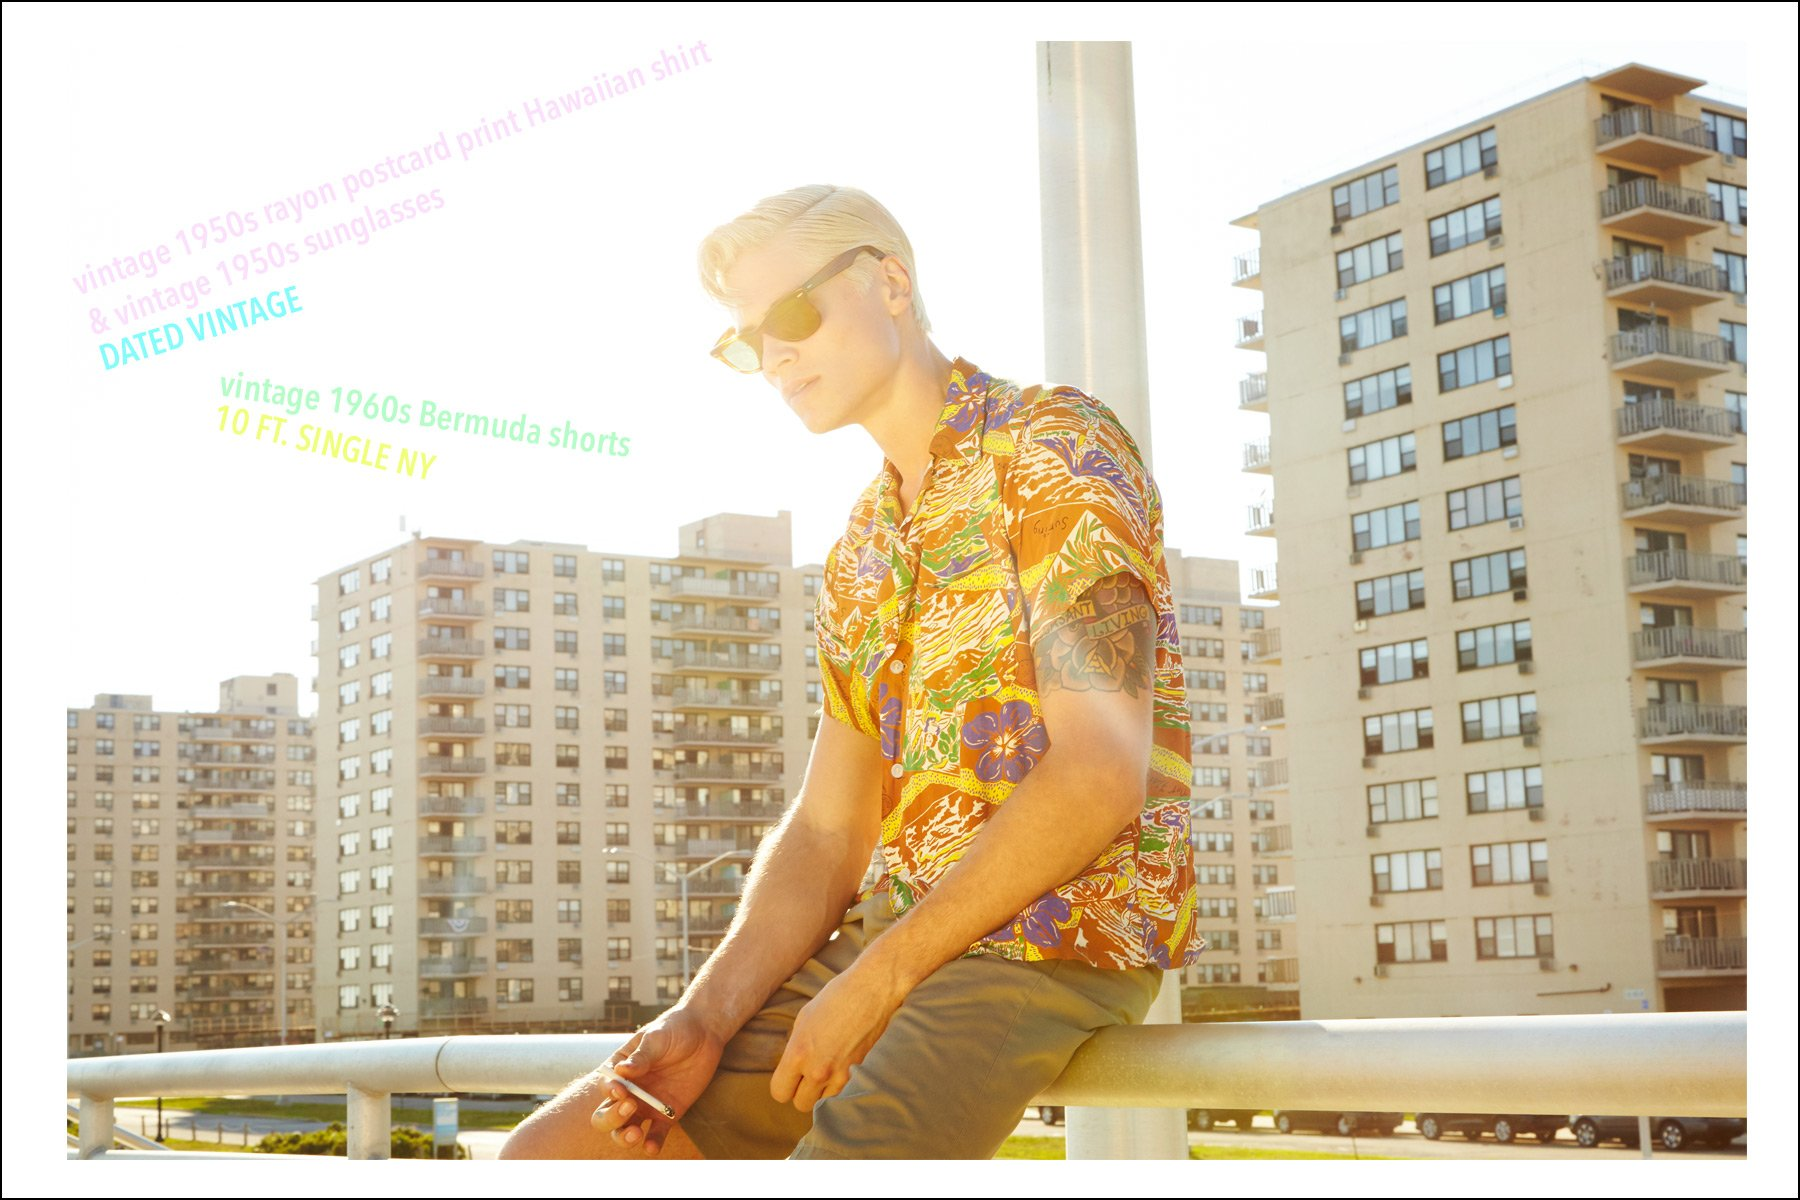 Model Jake Filling wears a vintage 1950s Hawaiian shirt from Dated Vintage. Photographed by Alexander Thompson for Ponyboy magazine NY.